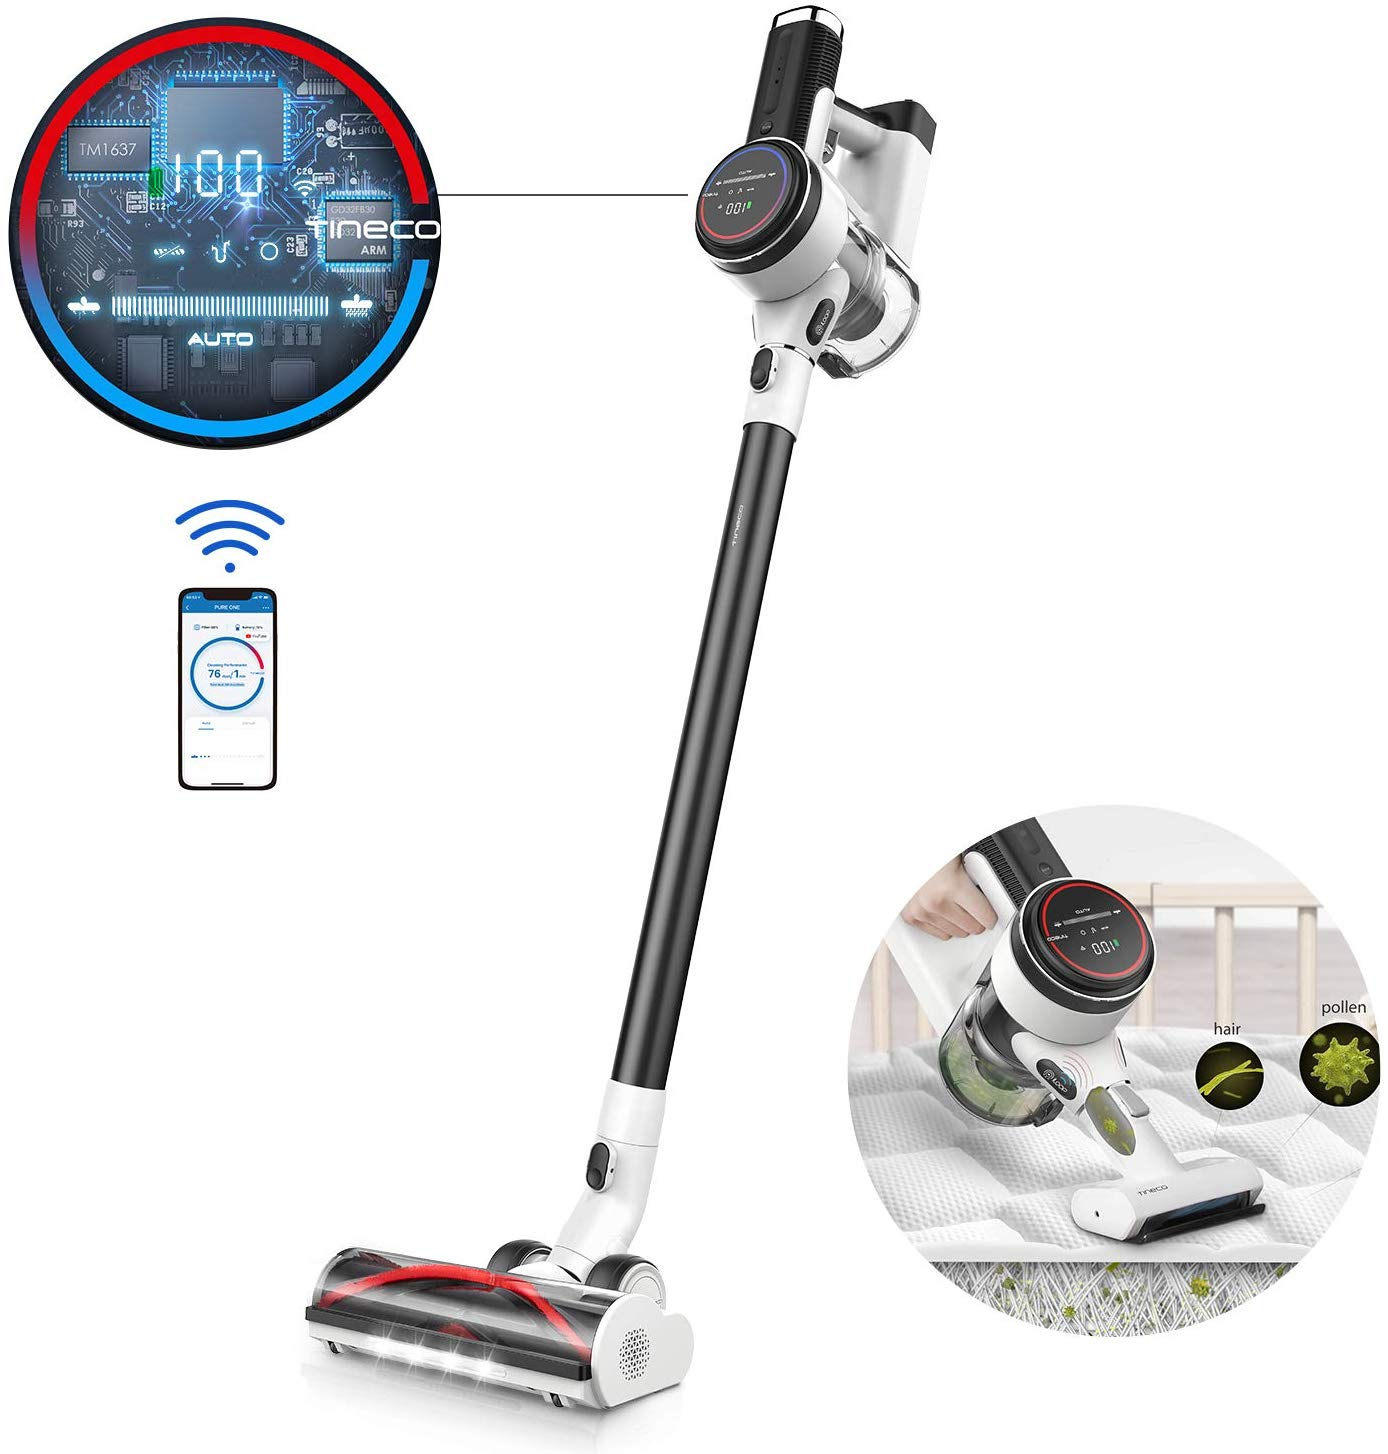 Tineco Cordless Vacuum Cleaner PURE ONE S12 Handheld Stick Vacuum Smart Suction